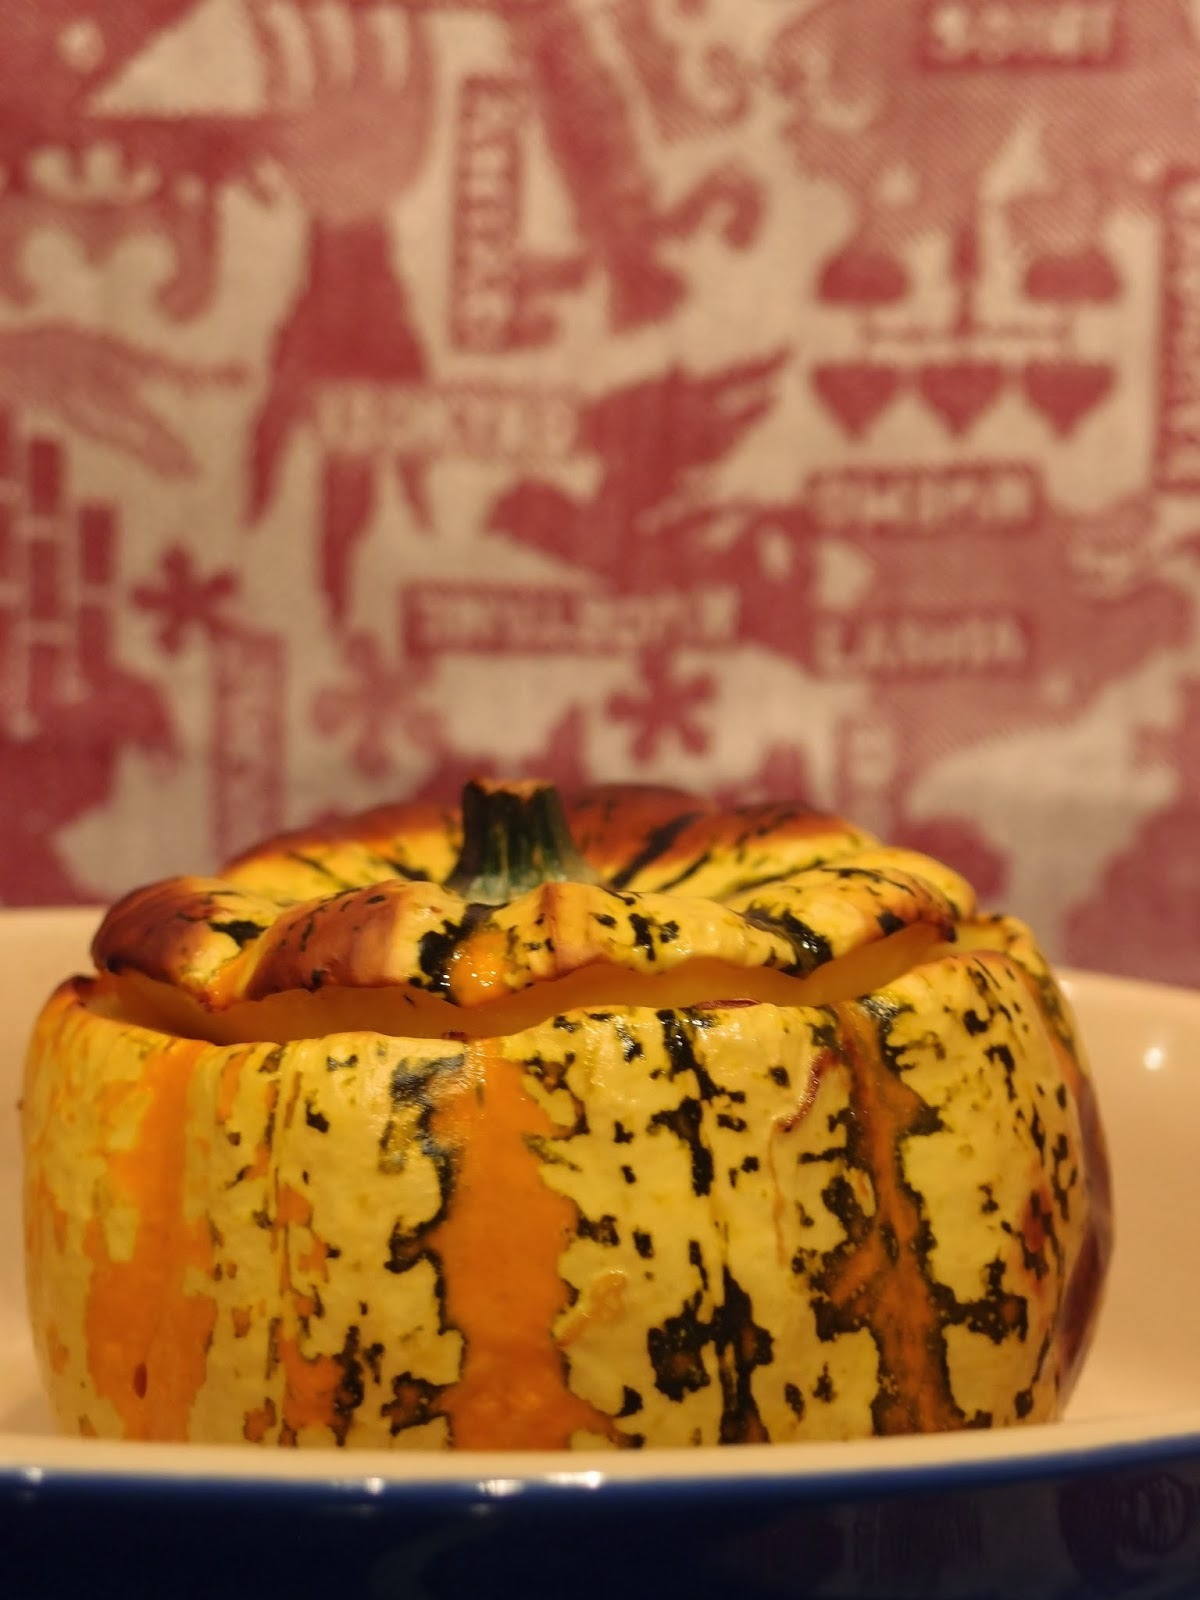 Harlequin squash stuffed with couscous